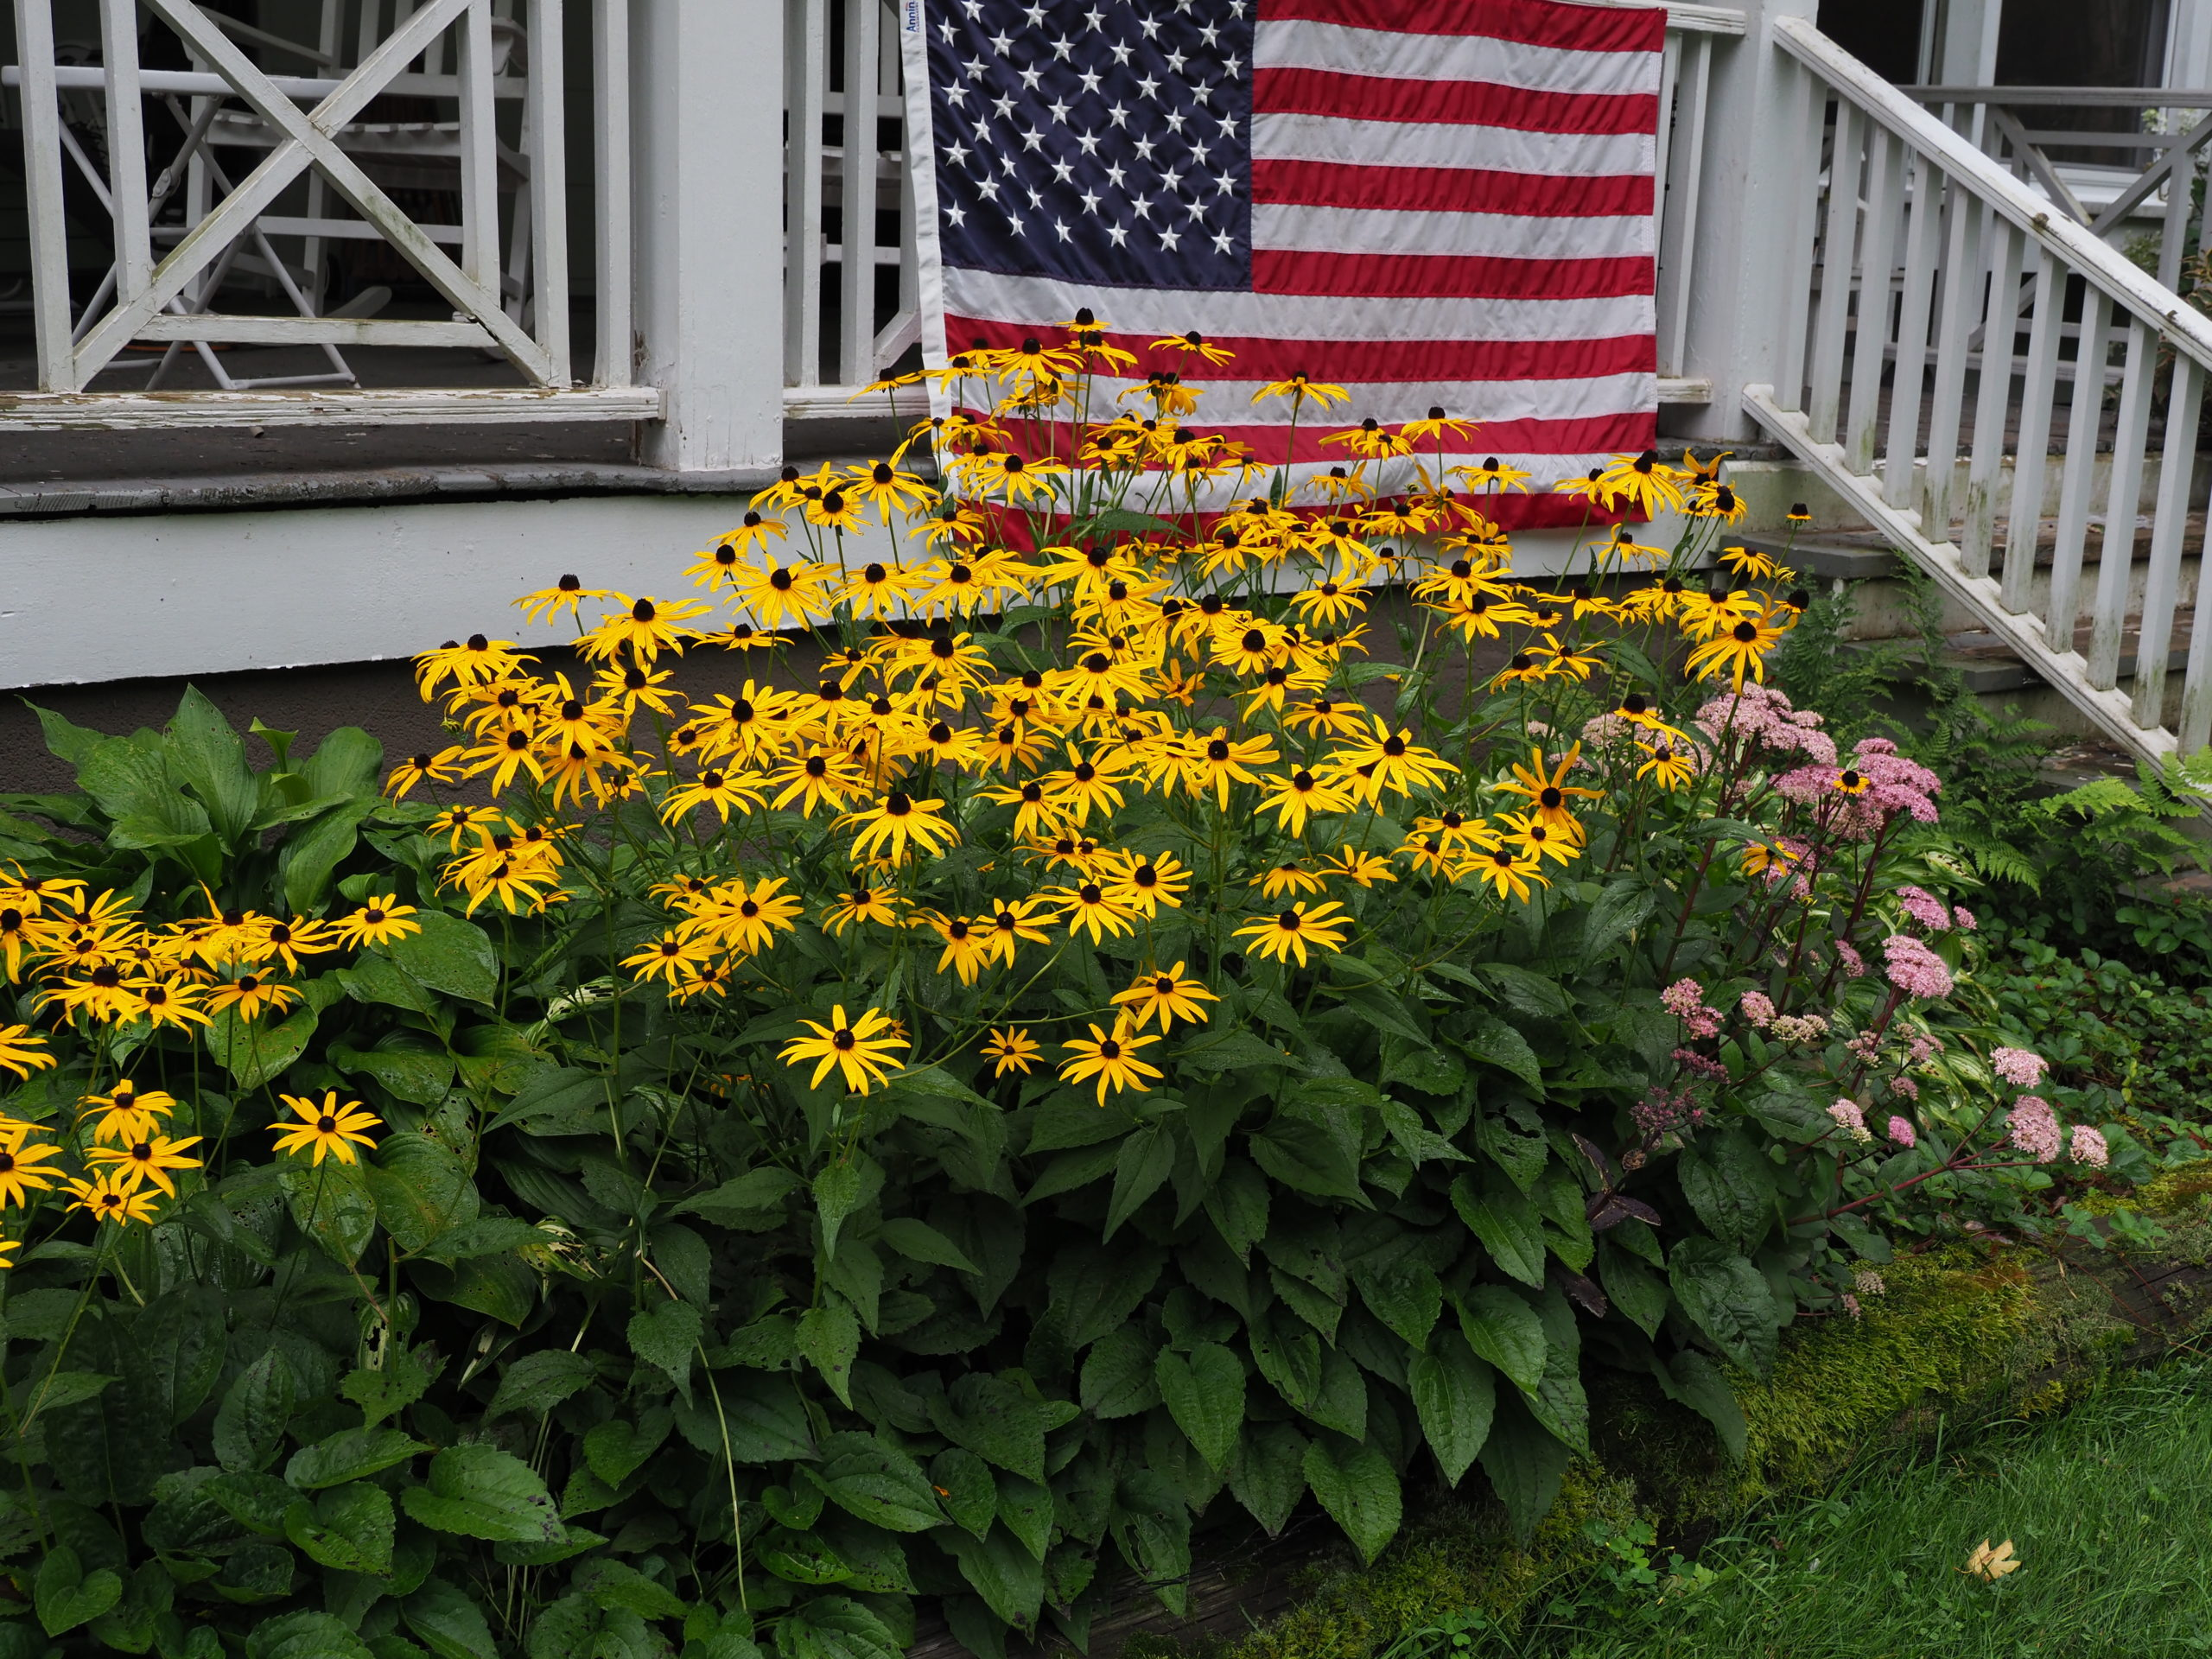 Rudbeckia fulgida var. Goldsturm is a late-summer bloomer that extends into the fall. It's a classic Rudbeckia and popular with landscapers. Heights can range from 15 inches to 2 feet tall (note the shorter plants on the left). Divisions are best for height uniformity, so if that's your goal avoid plants grown from seed. Easily divided every 3 years in the spring as it emerges.